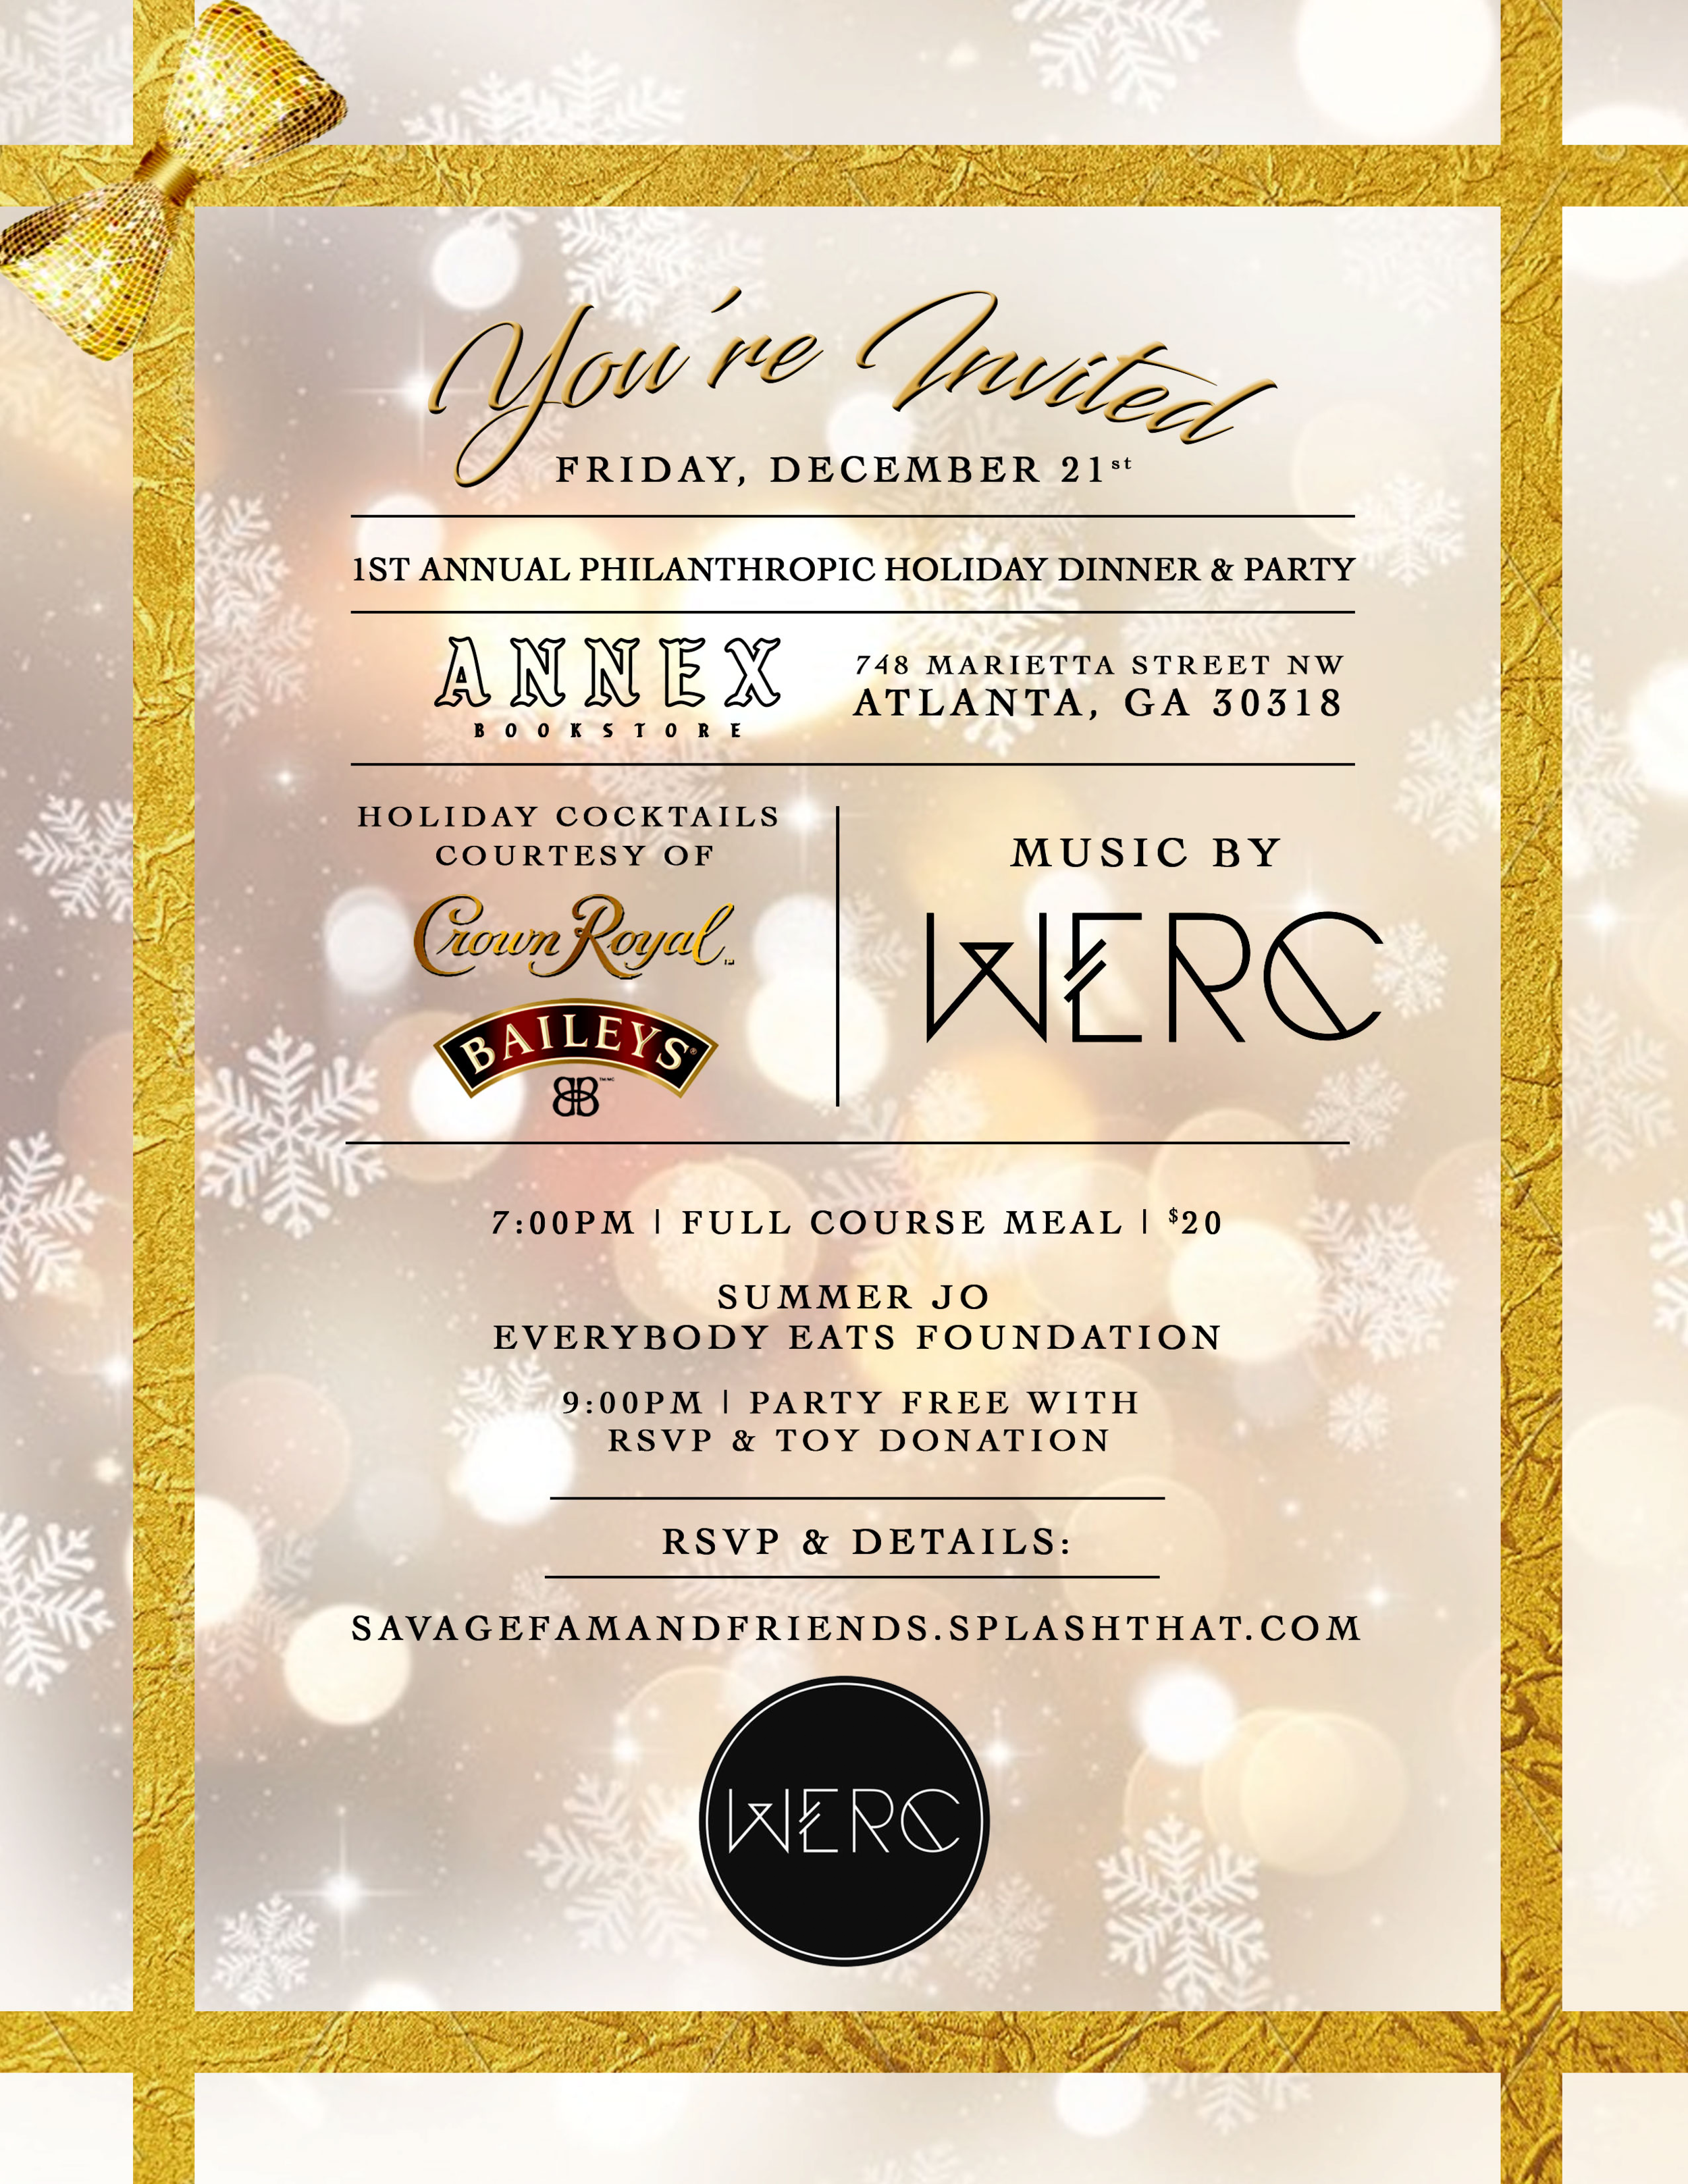 holiday dinner and party invite WERC.png